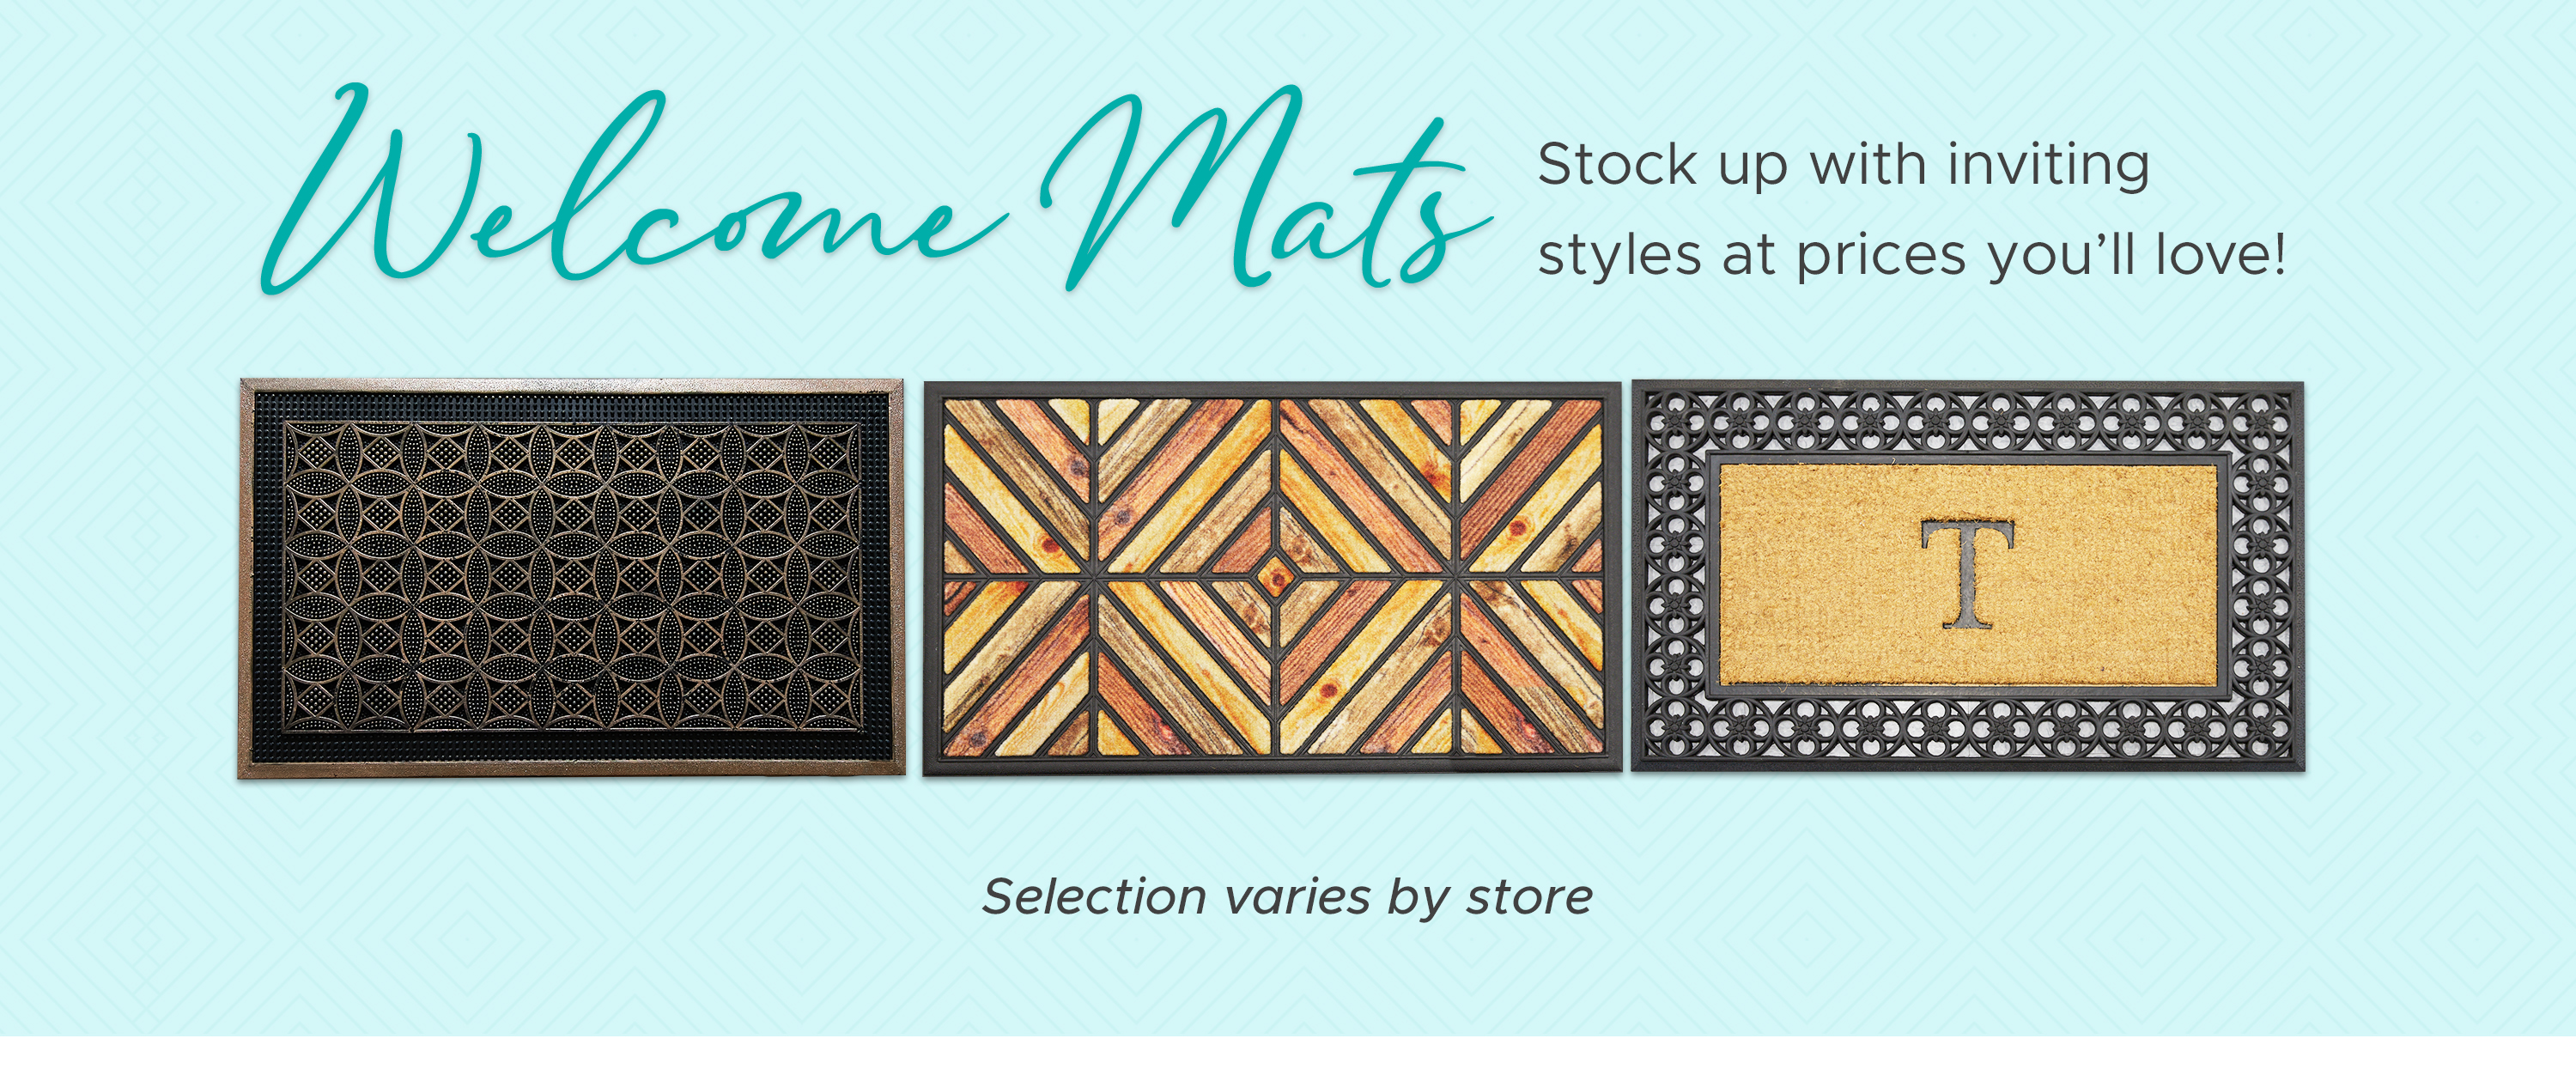 Welcome Mats - Stock up with inviting styles at prices you'll love